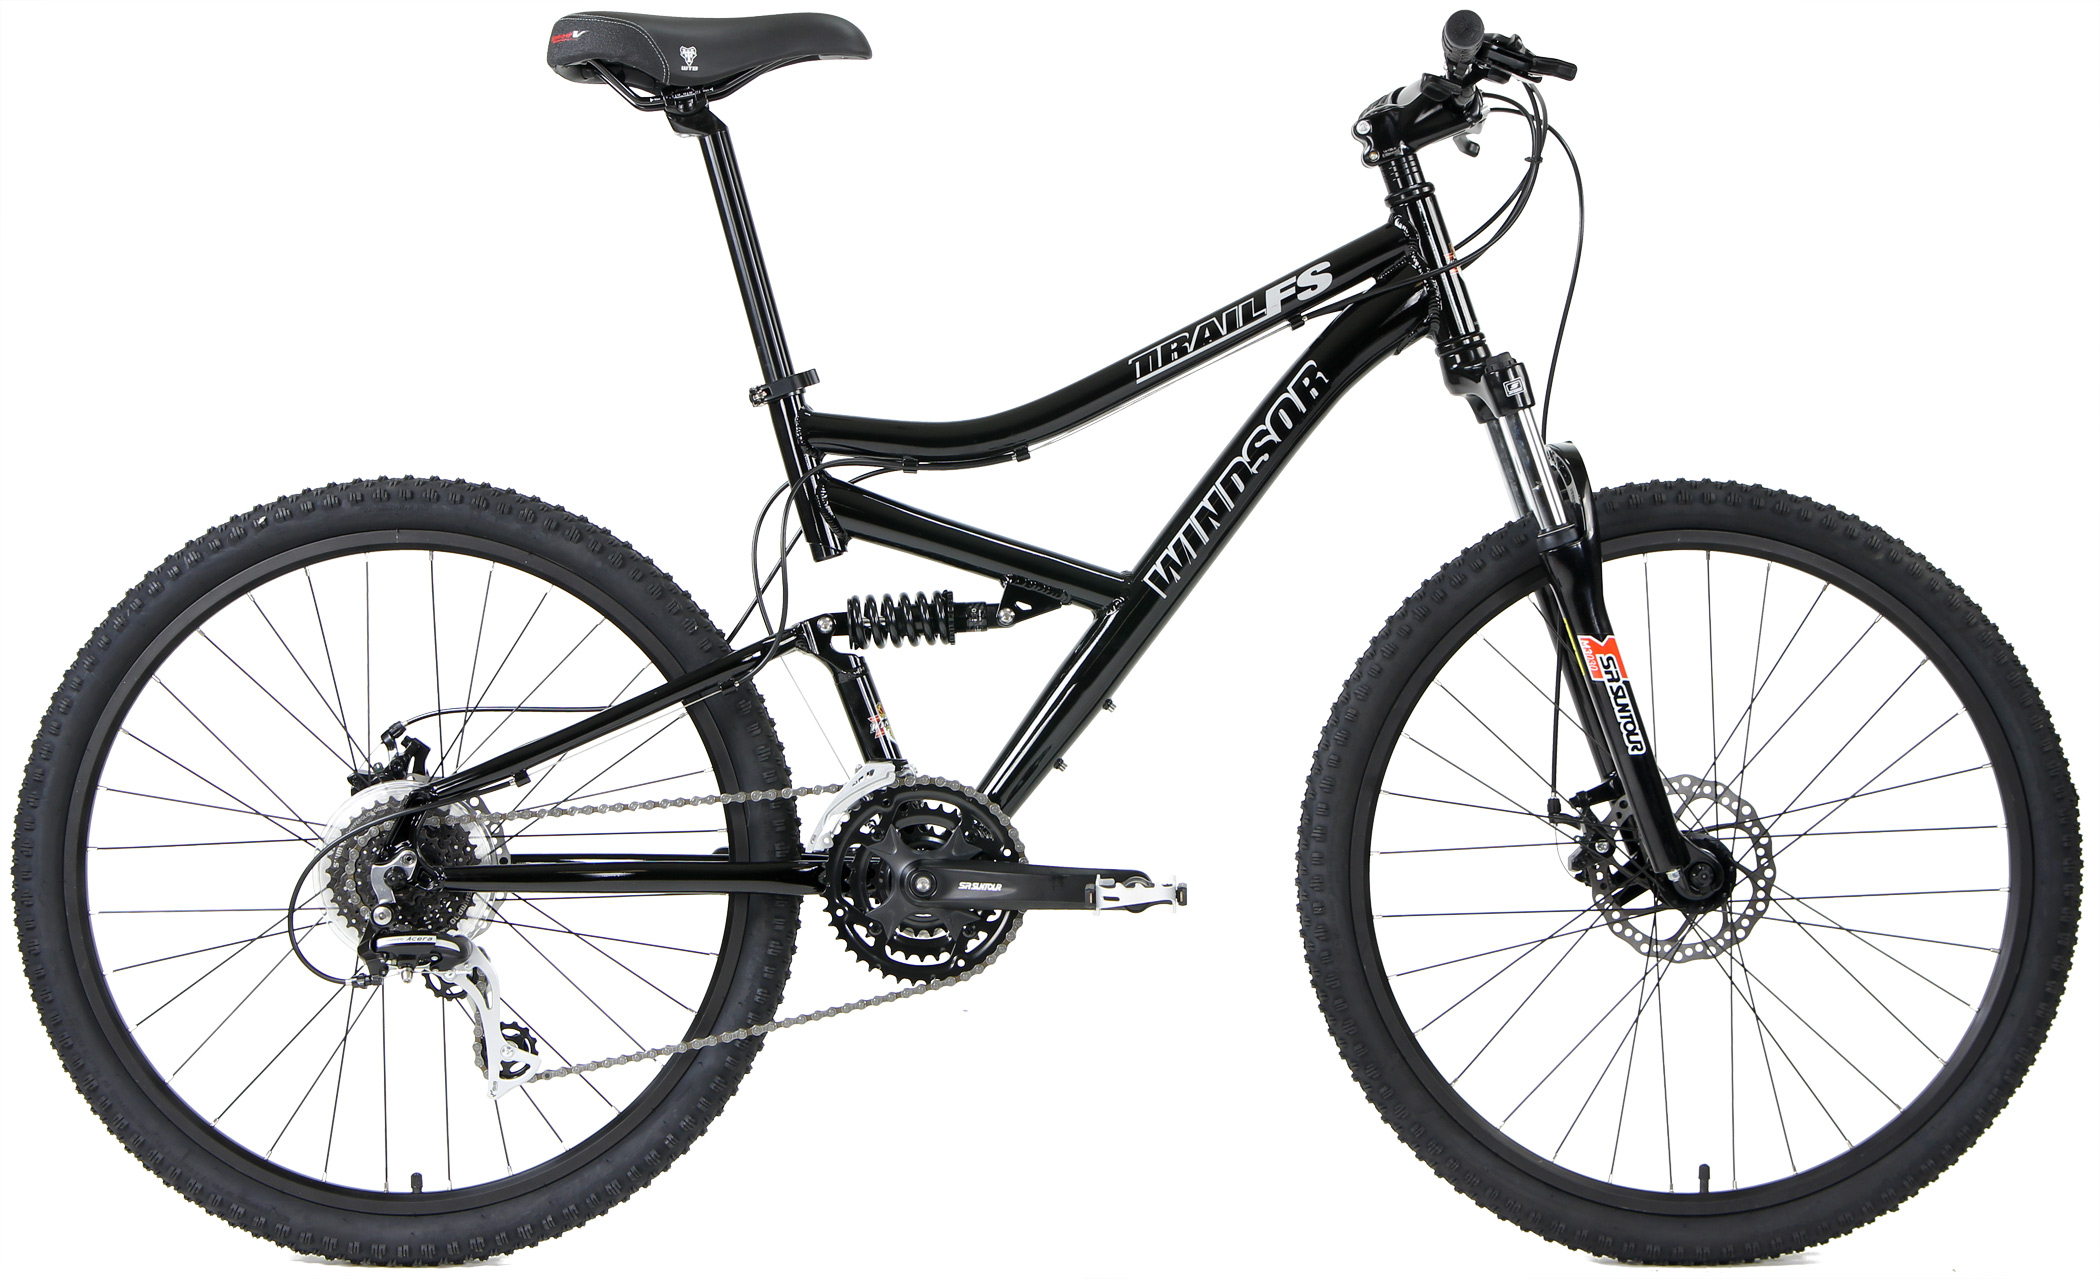 TRAIL FS - ALUMINUM FULL SUSPENSION w/ DISC BRAKES